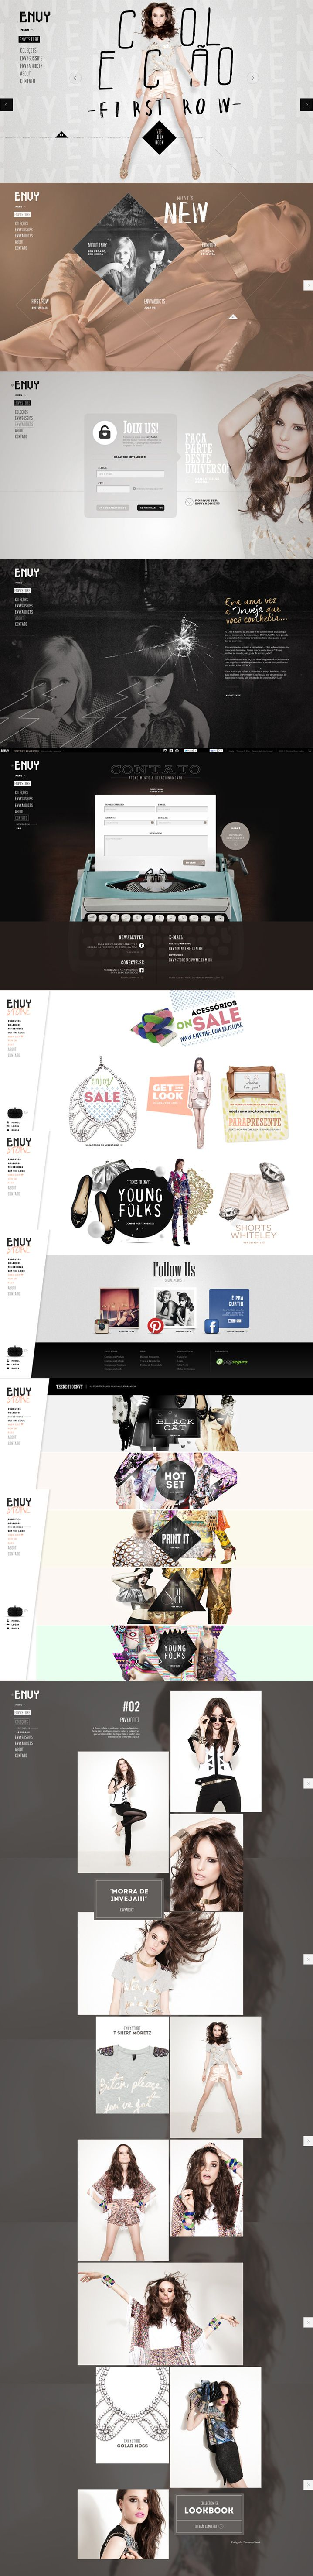 Winner 29 September 2013 Envy First Row Collection by Pianofuzz Design Studio http://www.cssdesignawards.com/css-web-design-award-winner.php?id=23053 ENVY reflects the vanity and feminine desire. Made for irreverent and authentic women. #Scroll #Photographic #Design #WebAward